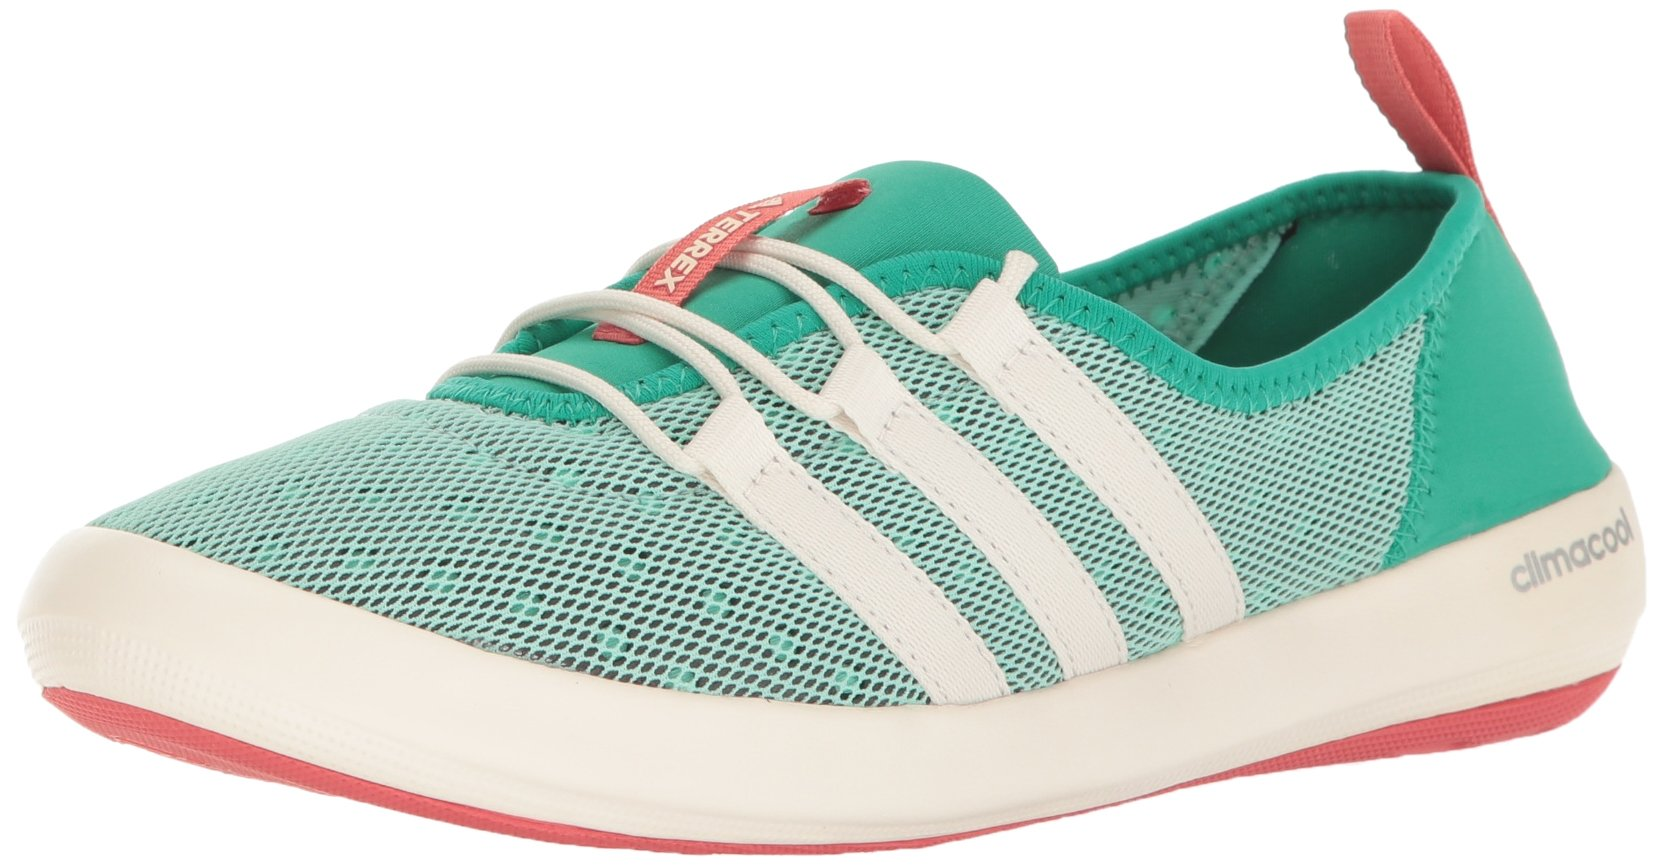 adidas outdoor Women's Terrex Climacool Boat Sleek Water Shoe, Core Green/chalk White/Tactile Pink, 6.5 M US